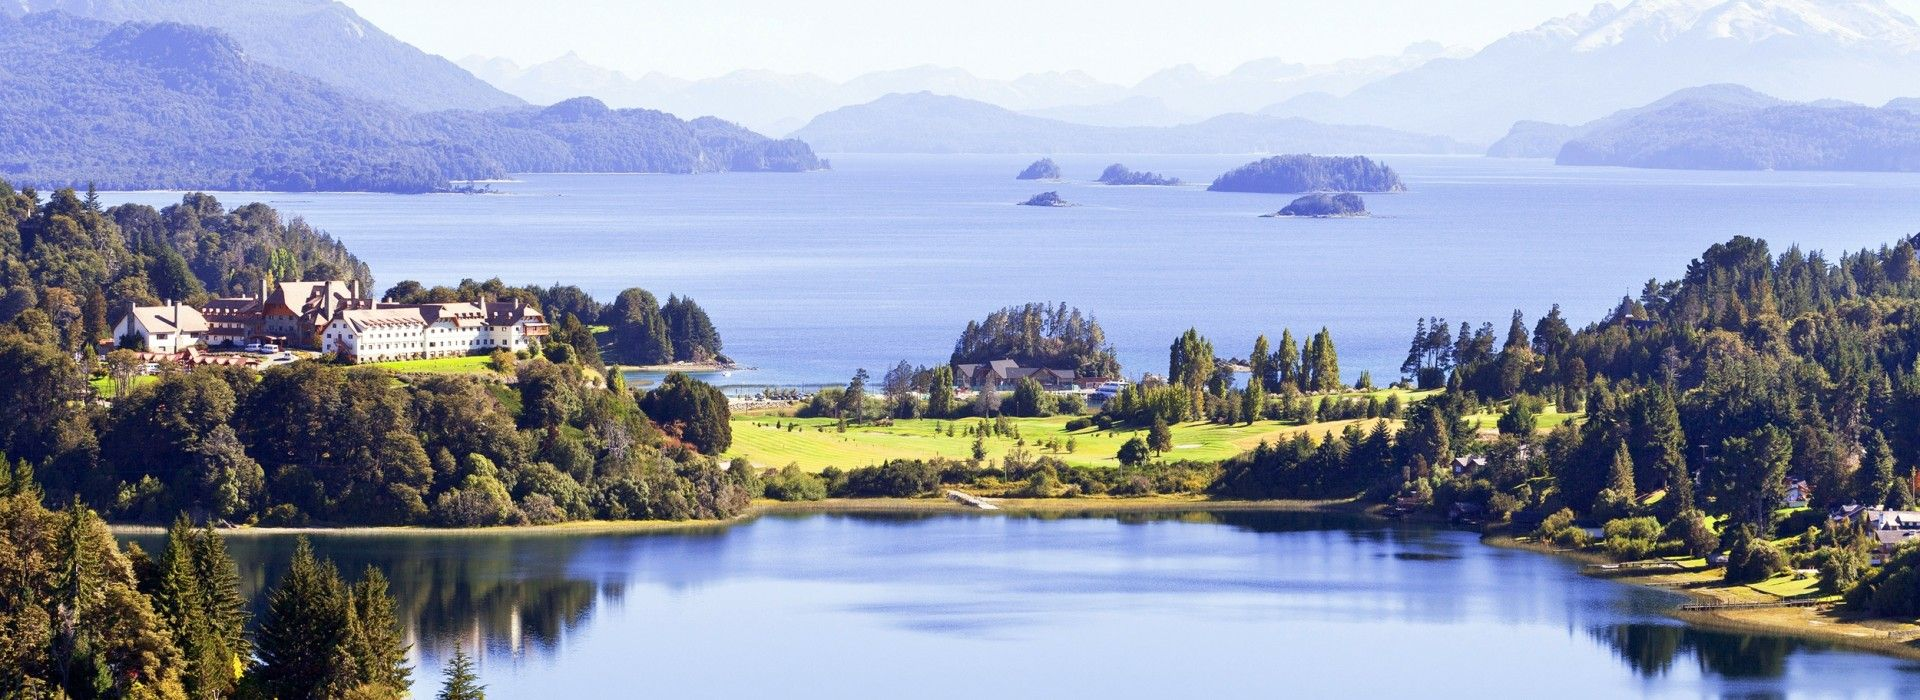 Bariloche Tours and Holidays 2019/2020